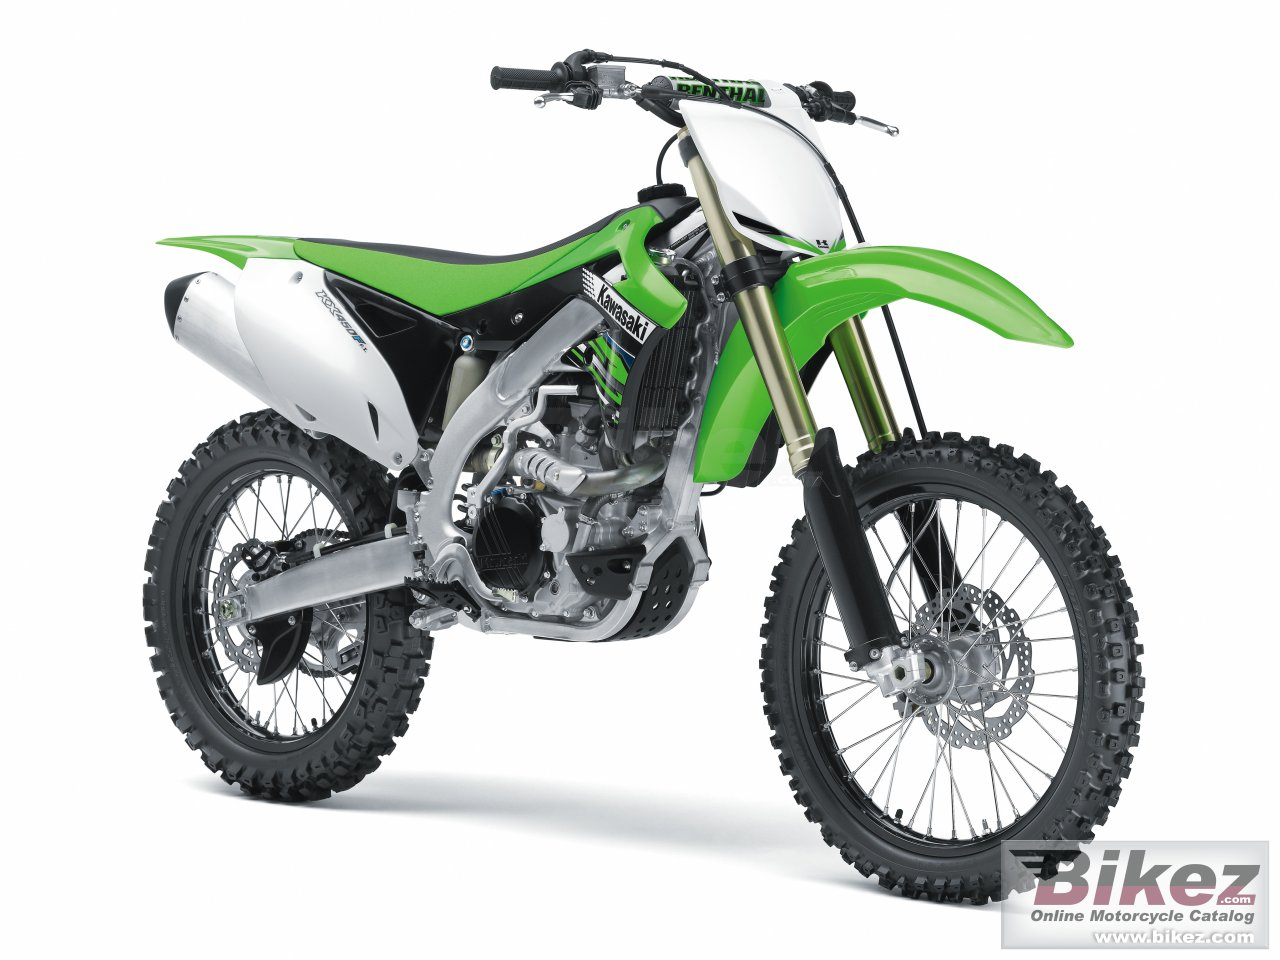 Big Kawasaki kx 450f picture and wallpaper from Bikez.com